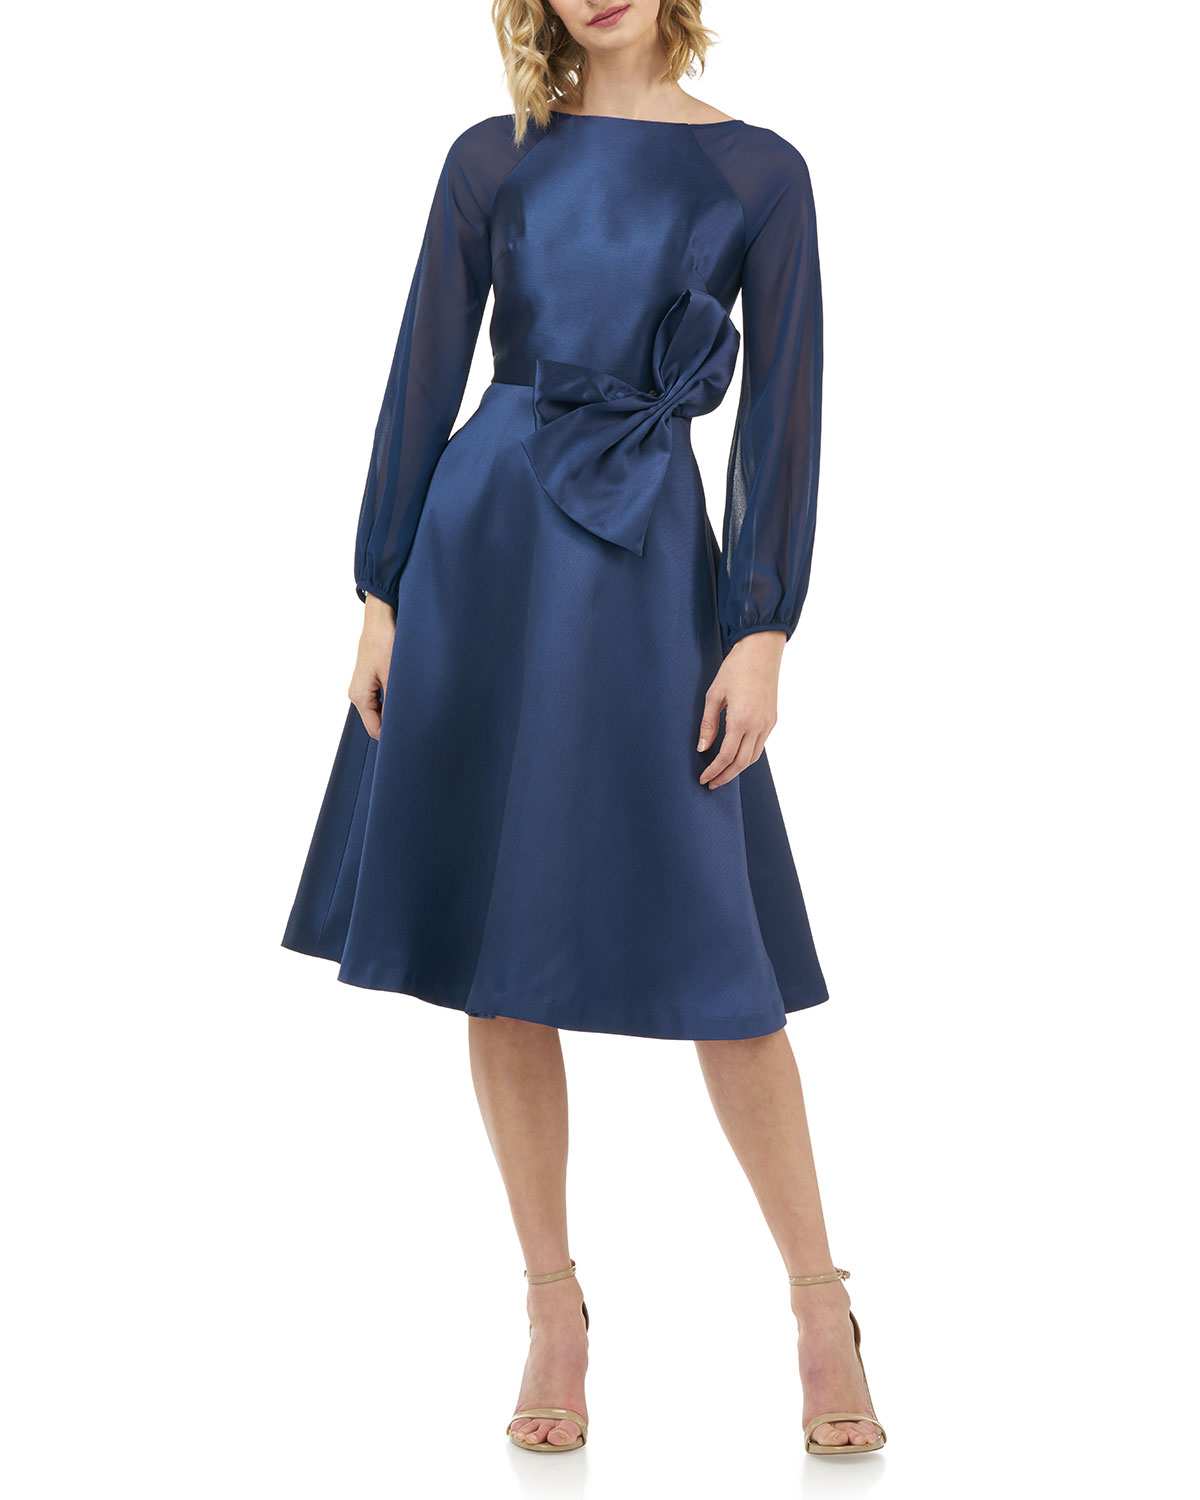 Kay Unger Dresses JADE MIKADO DRESS WITH CHIFFON BLOUSON-SLEEVES & 3D BOW DETAIL